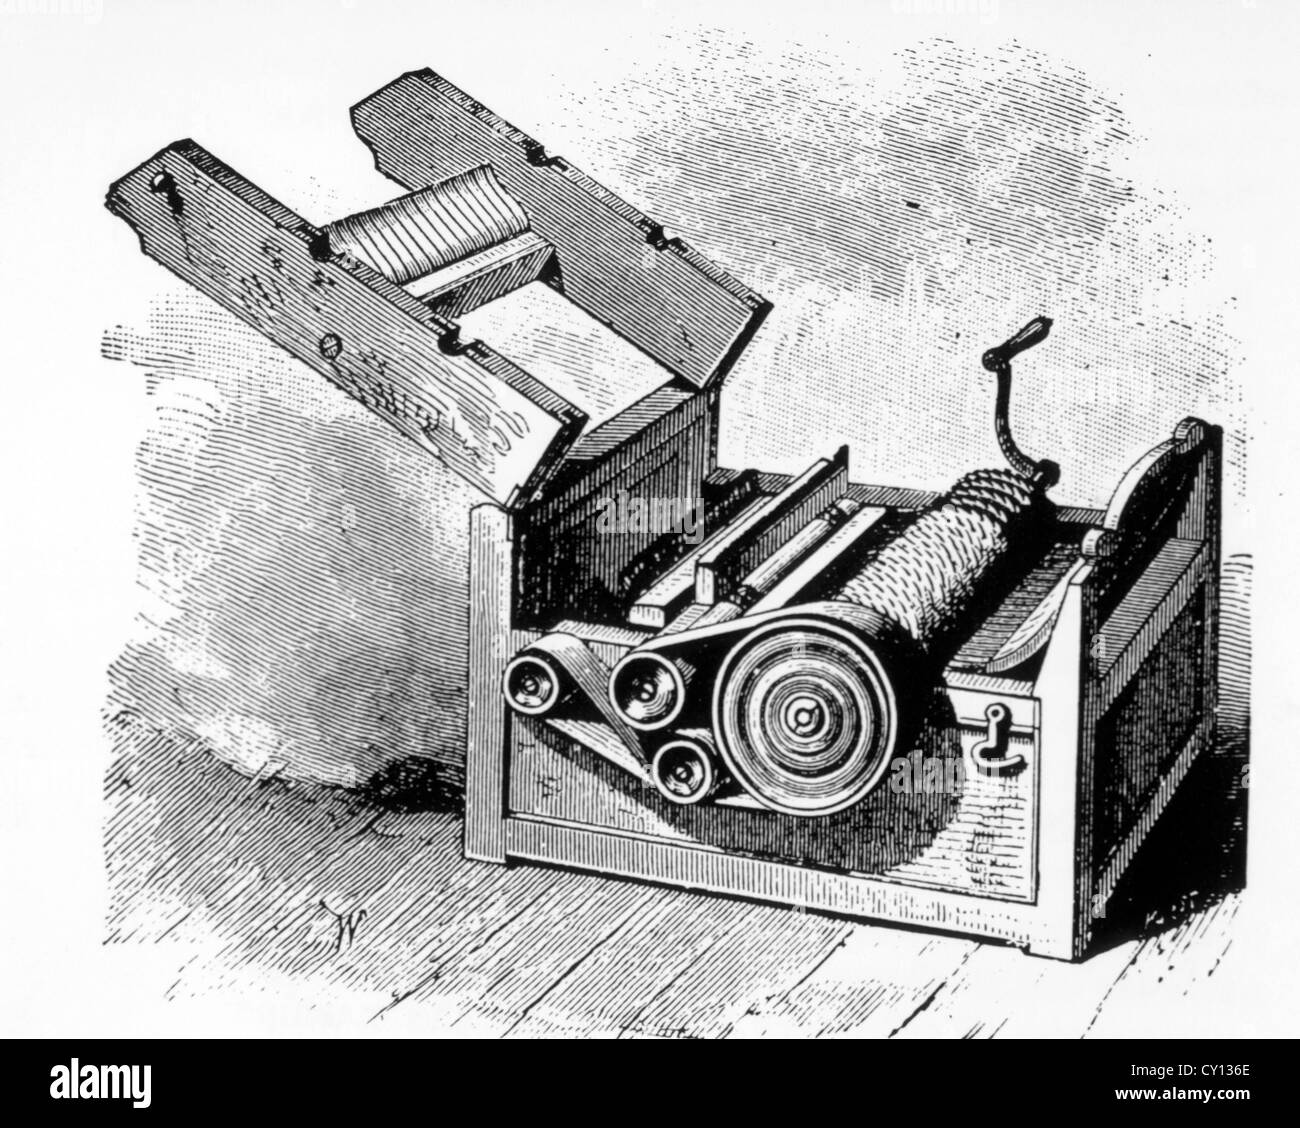 cotton gin invented by eli whitney 1793 illustration stock photo